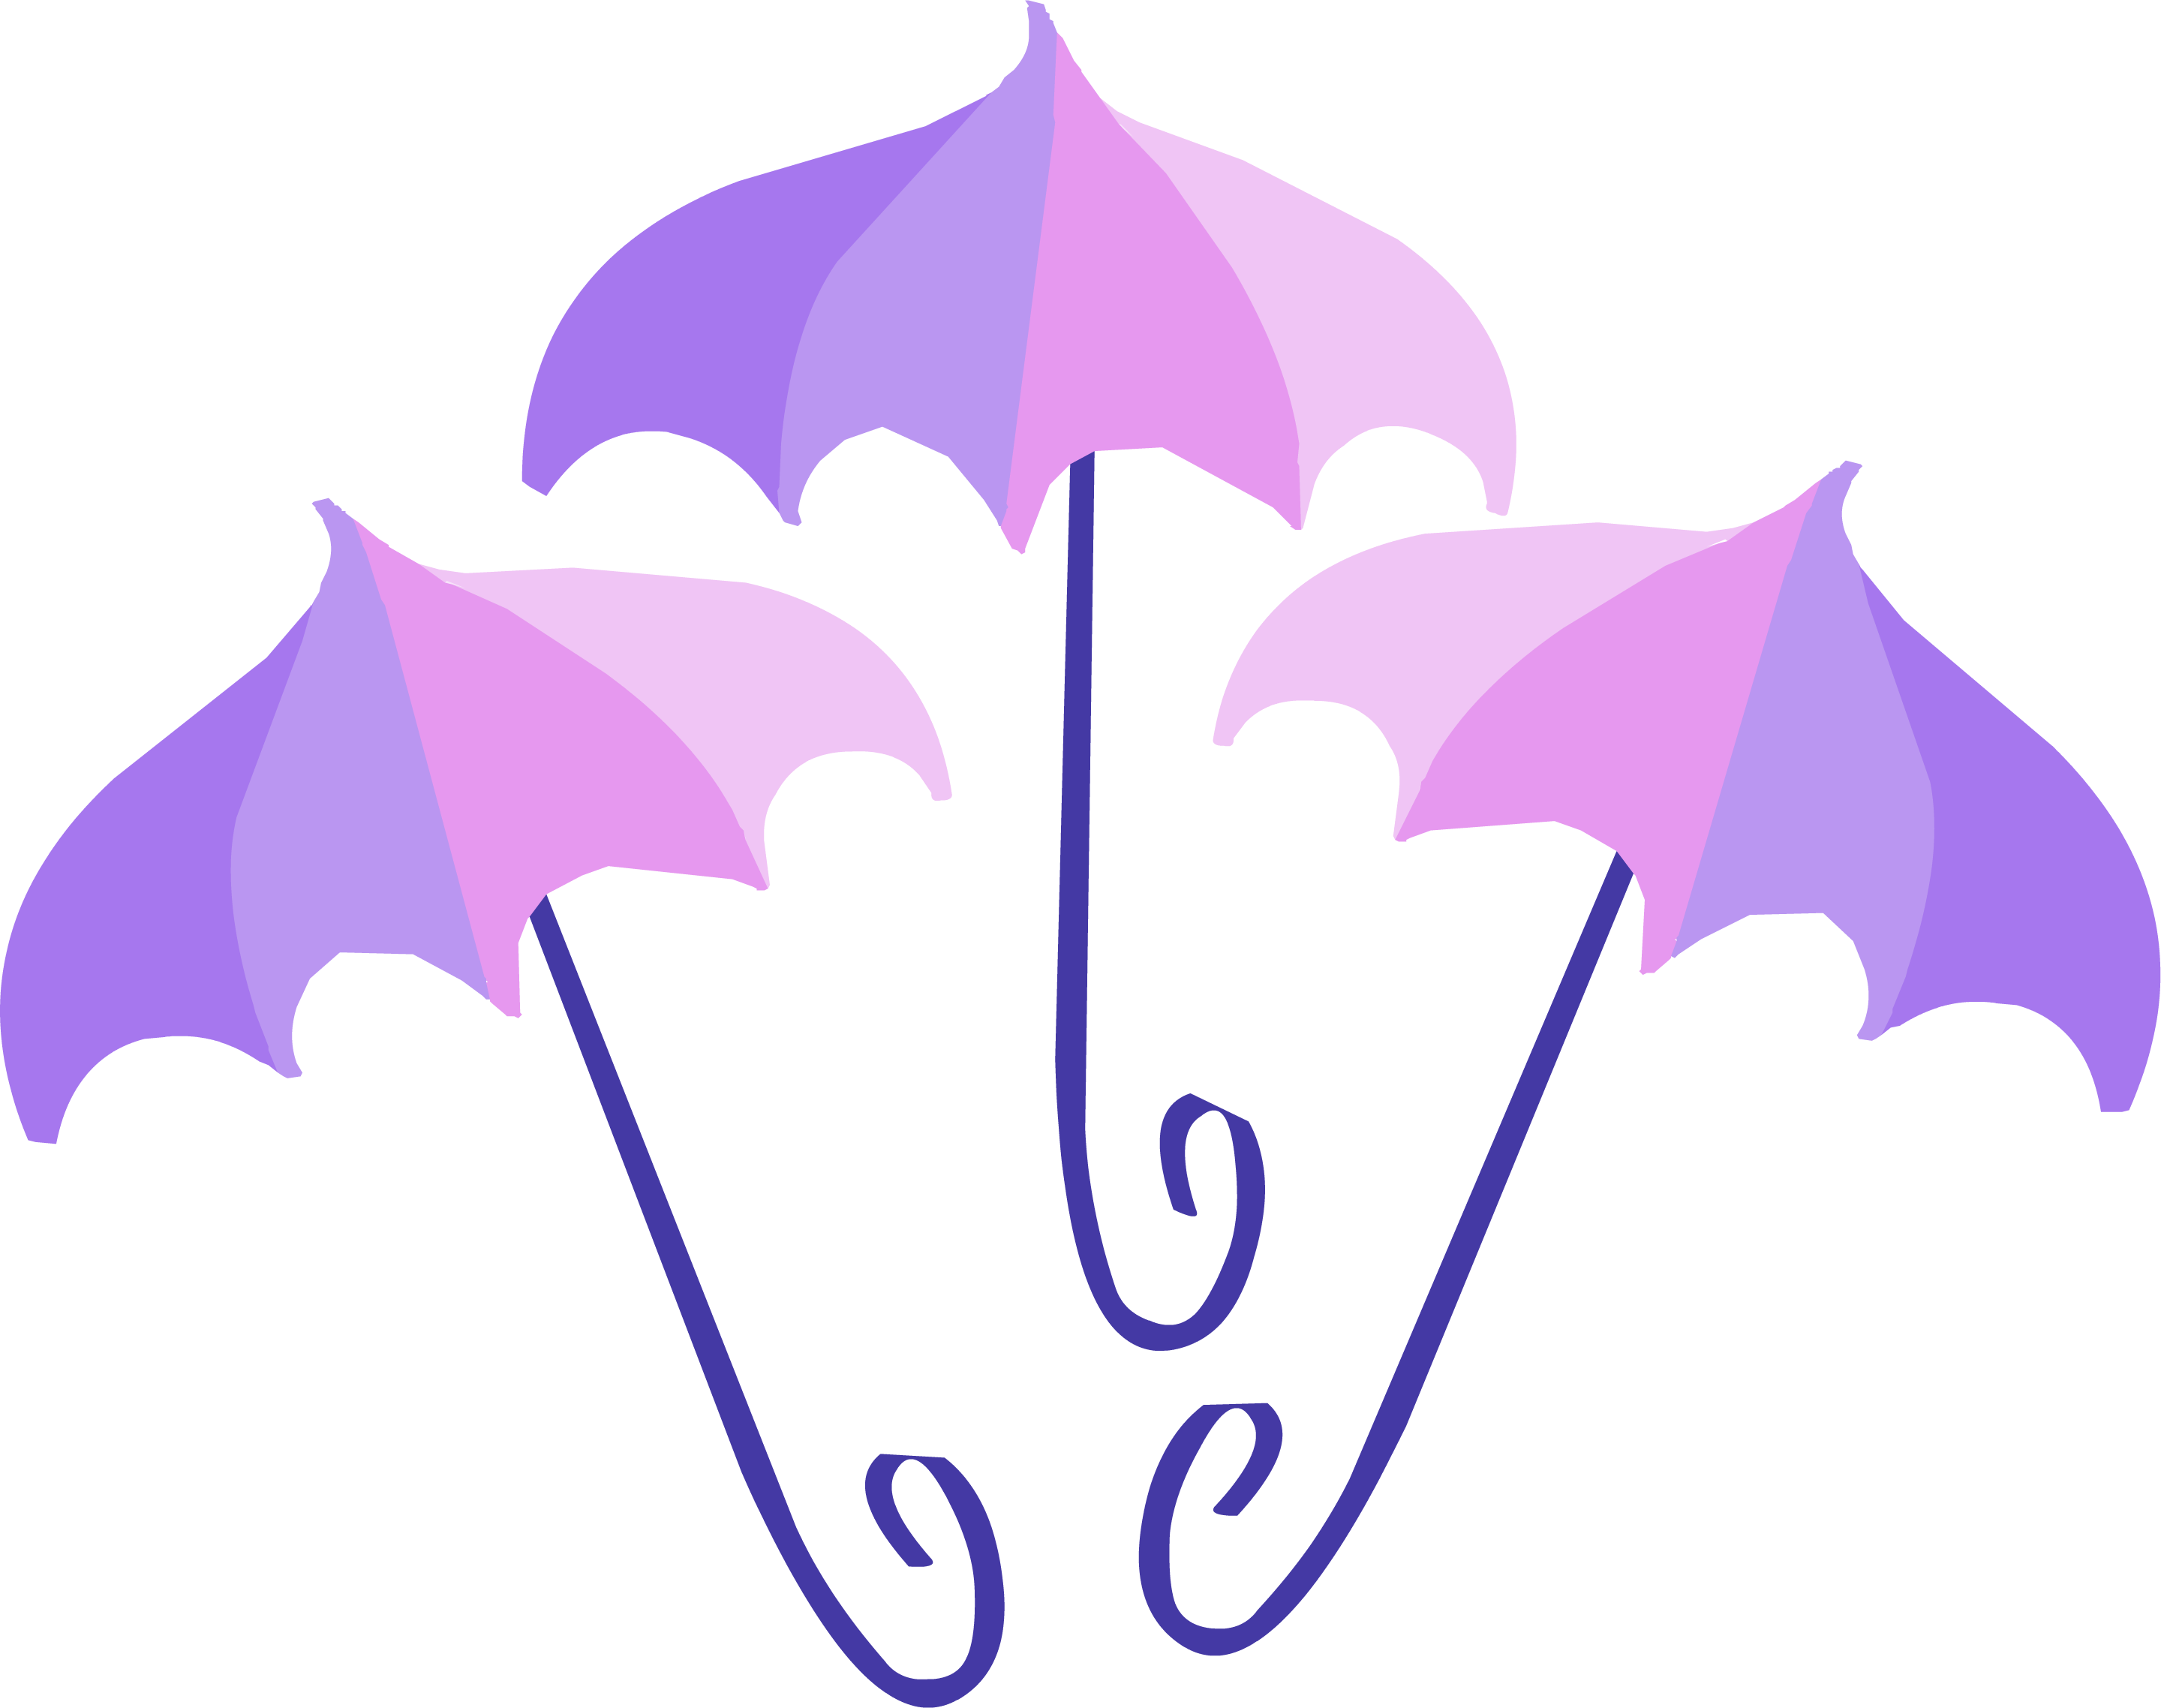 Collection of free drizzling. Windy clipart fog cloud